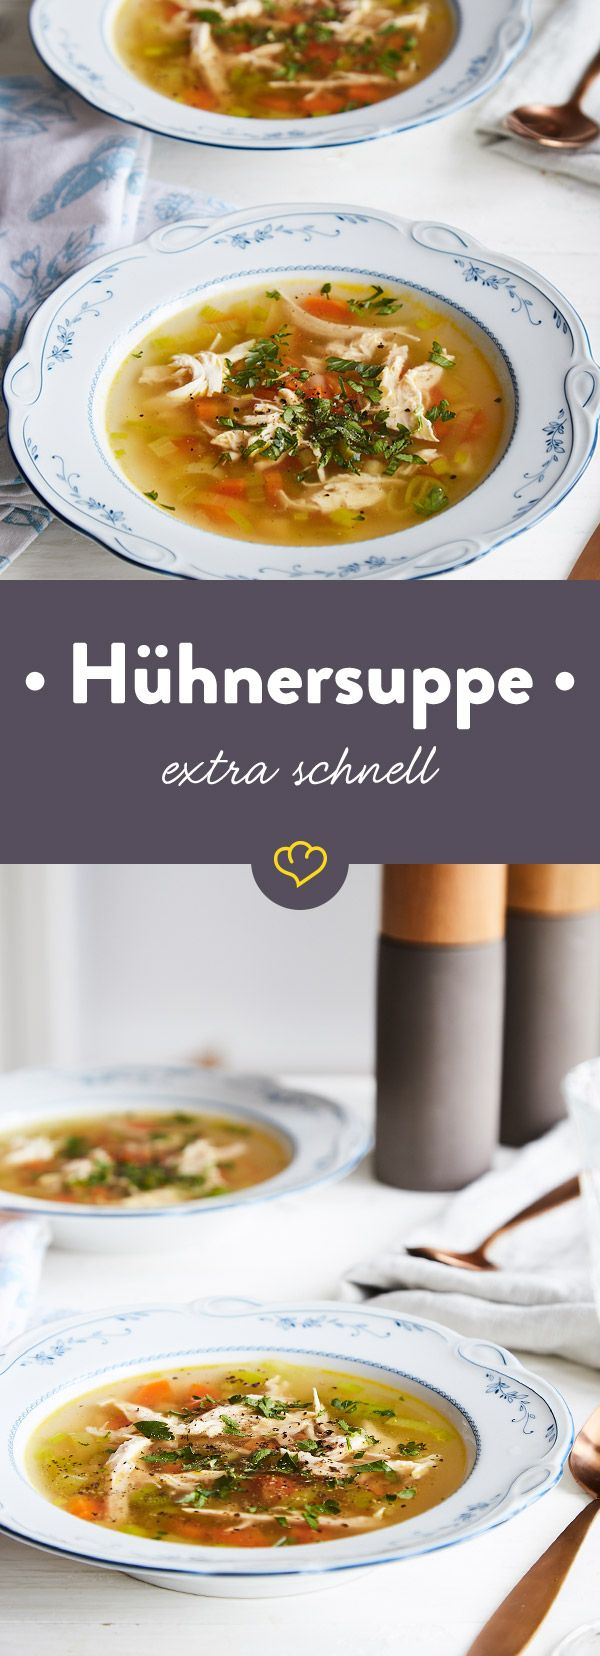 Schnelle Hühnersuppe Ohne Nudeln Rezept Foodies And Drinks